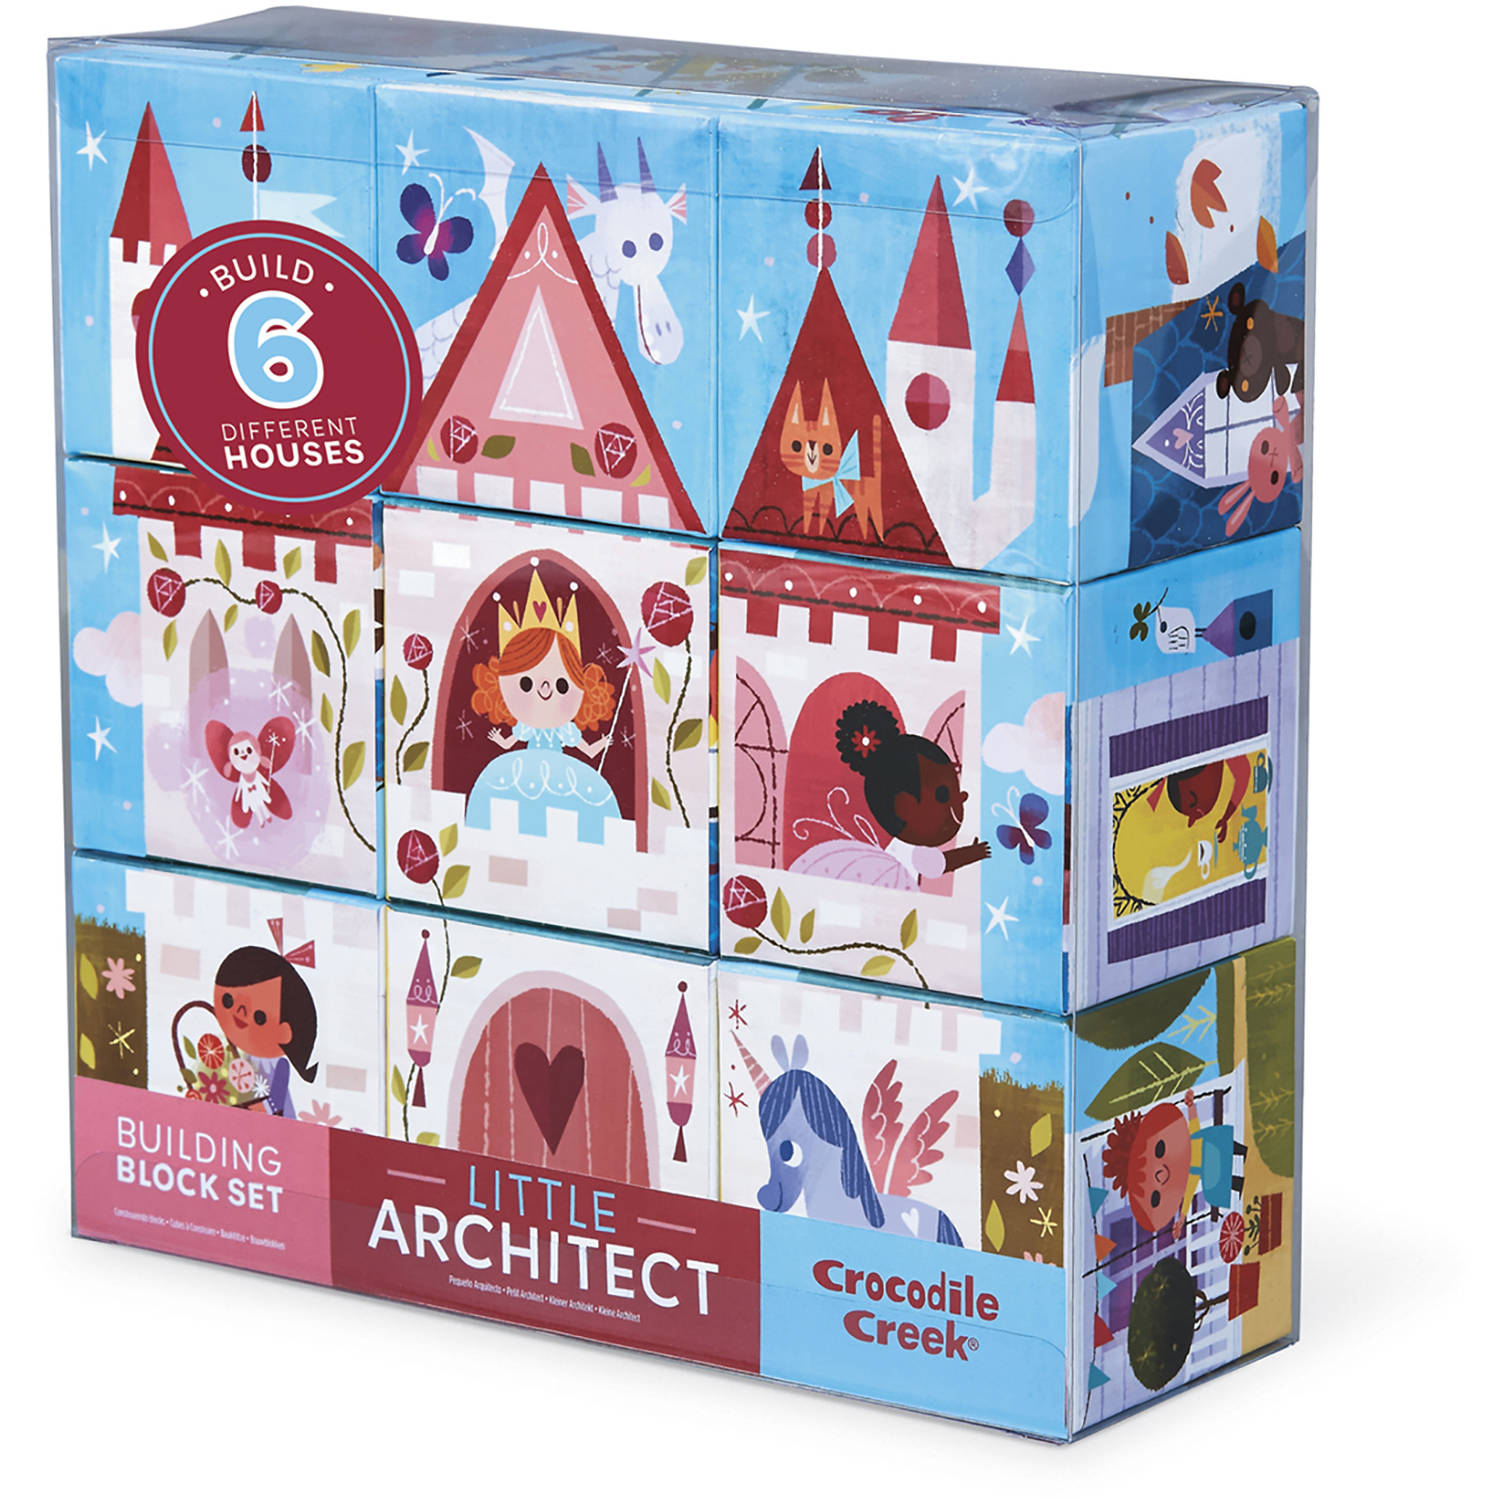 Crocodile Creek Little Architect Girl Builder Jumbo Block Mix-and-Match Stacking Set, 3.5""